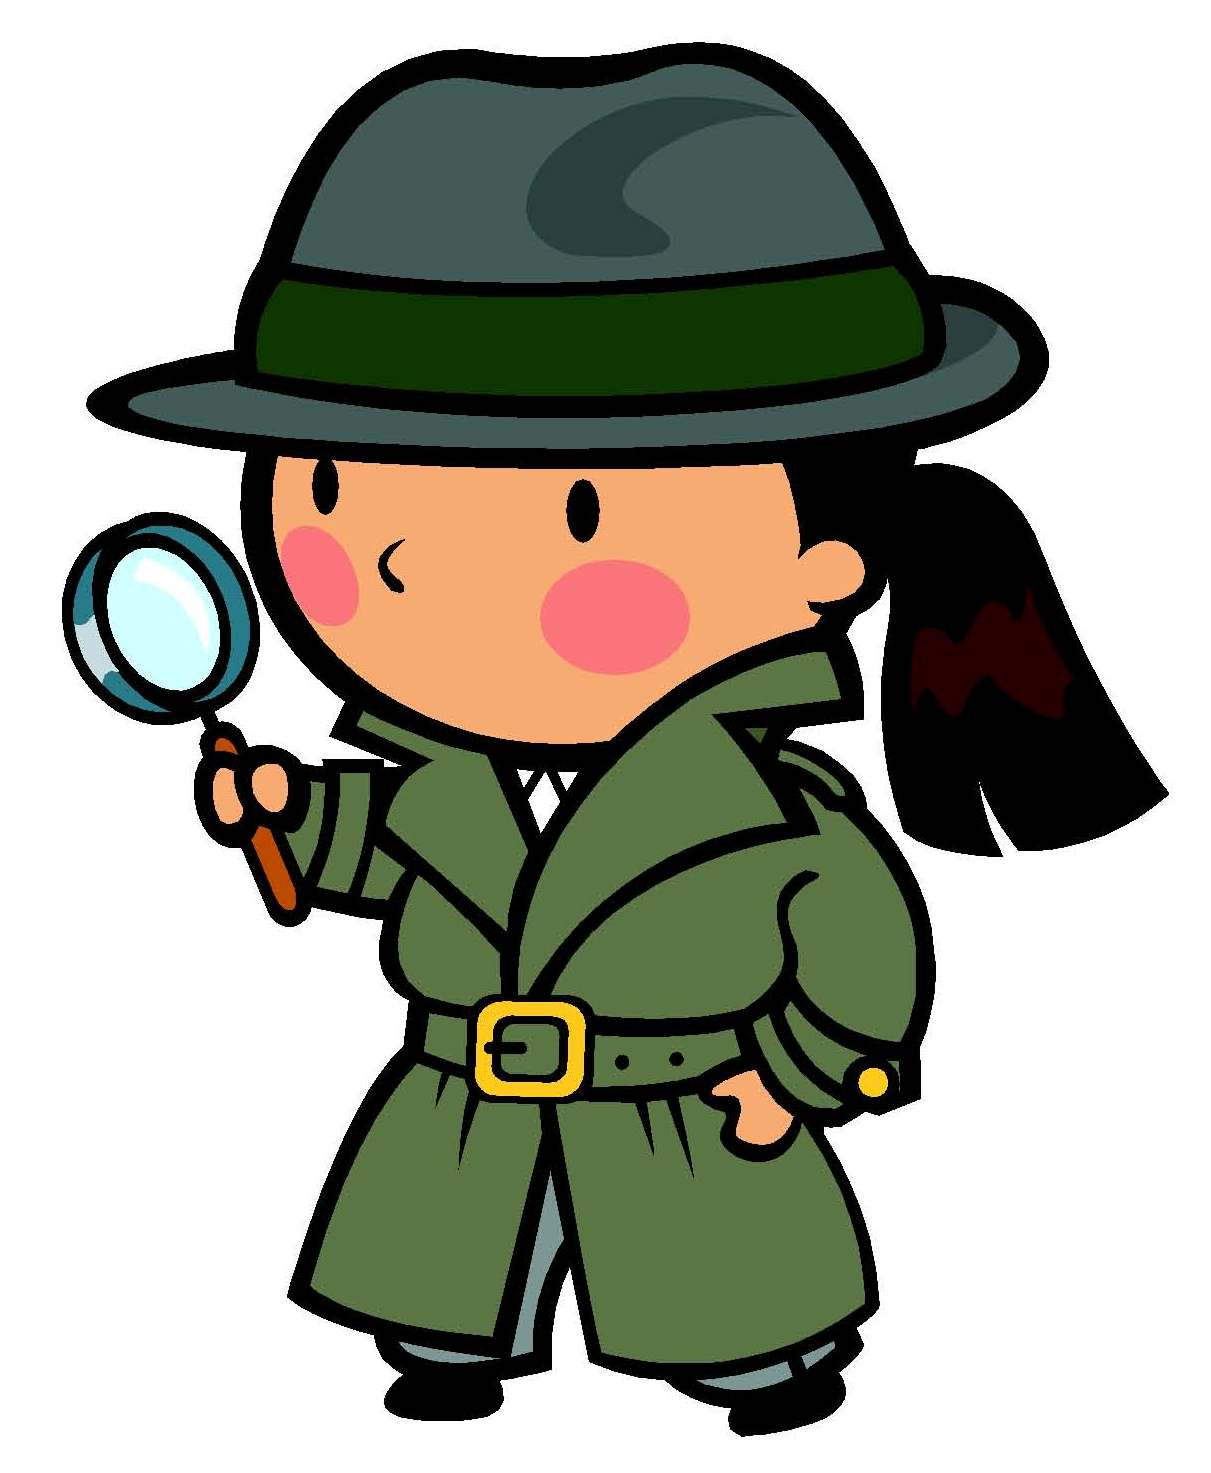 Detective clipart Hostted - Detective PNG Melonheadz